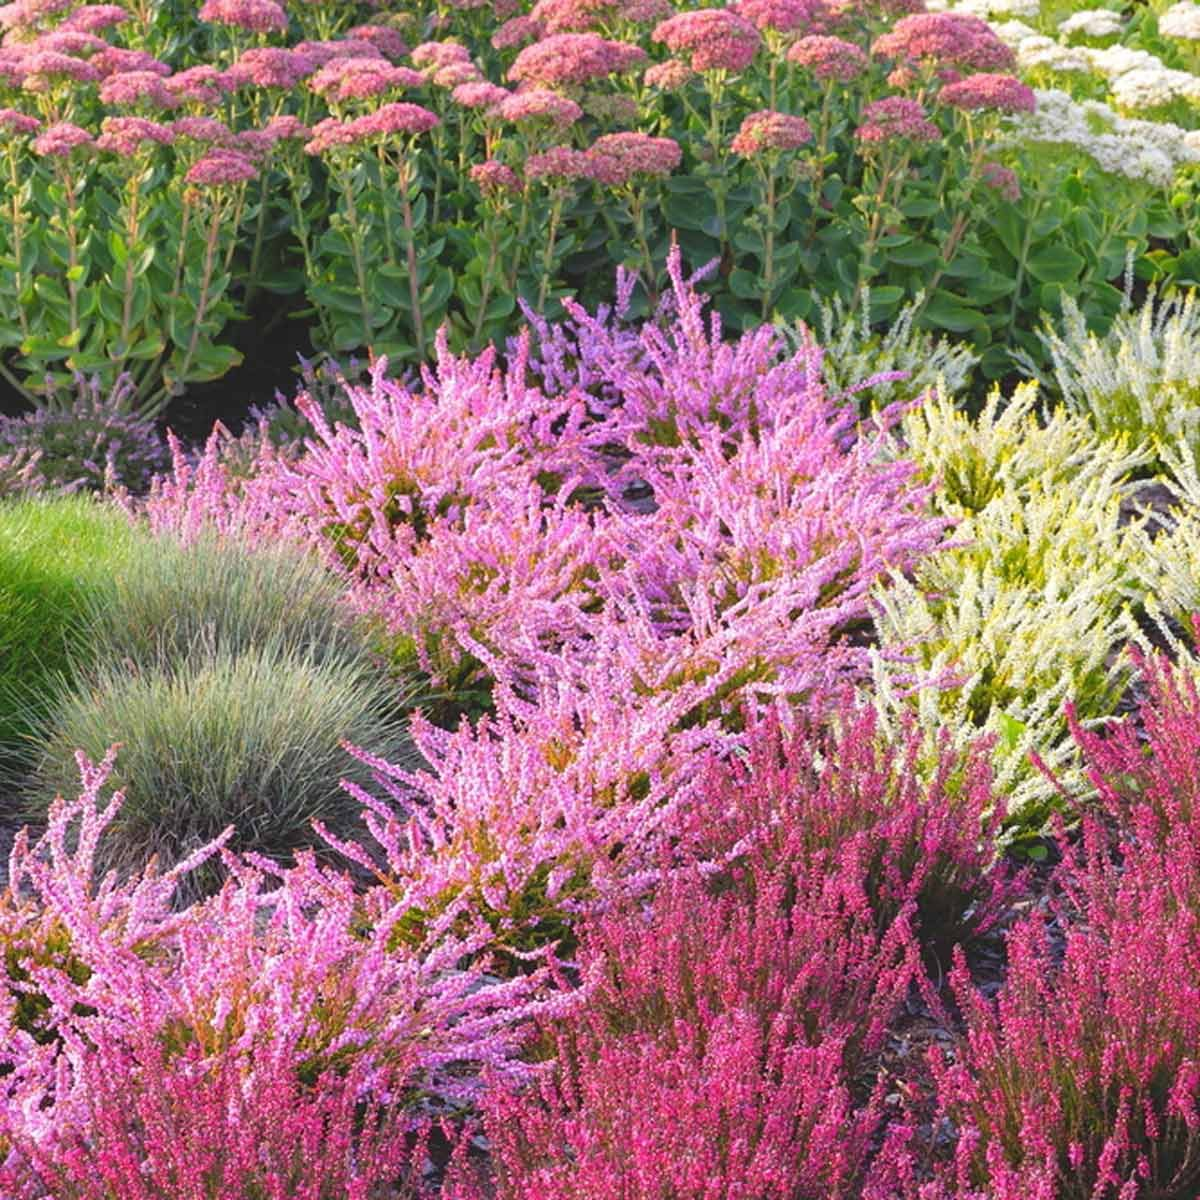 pink white red heather flowers